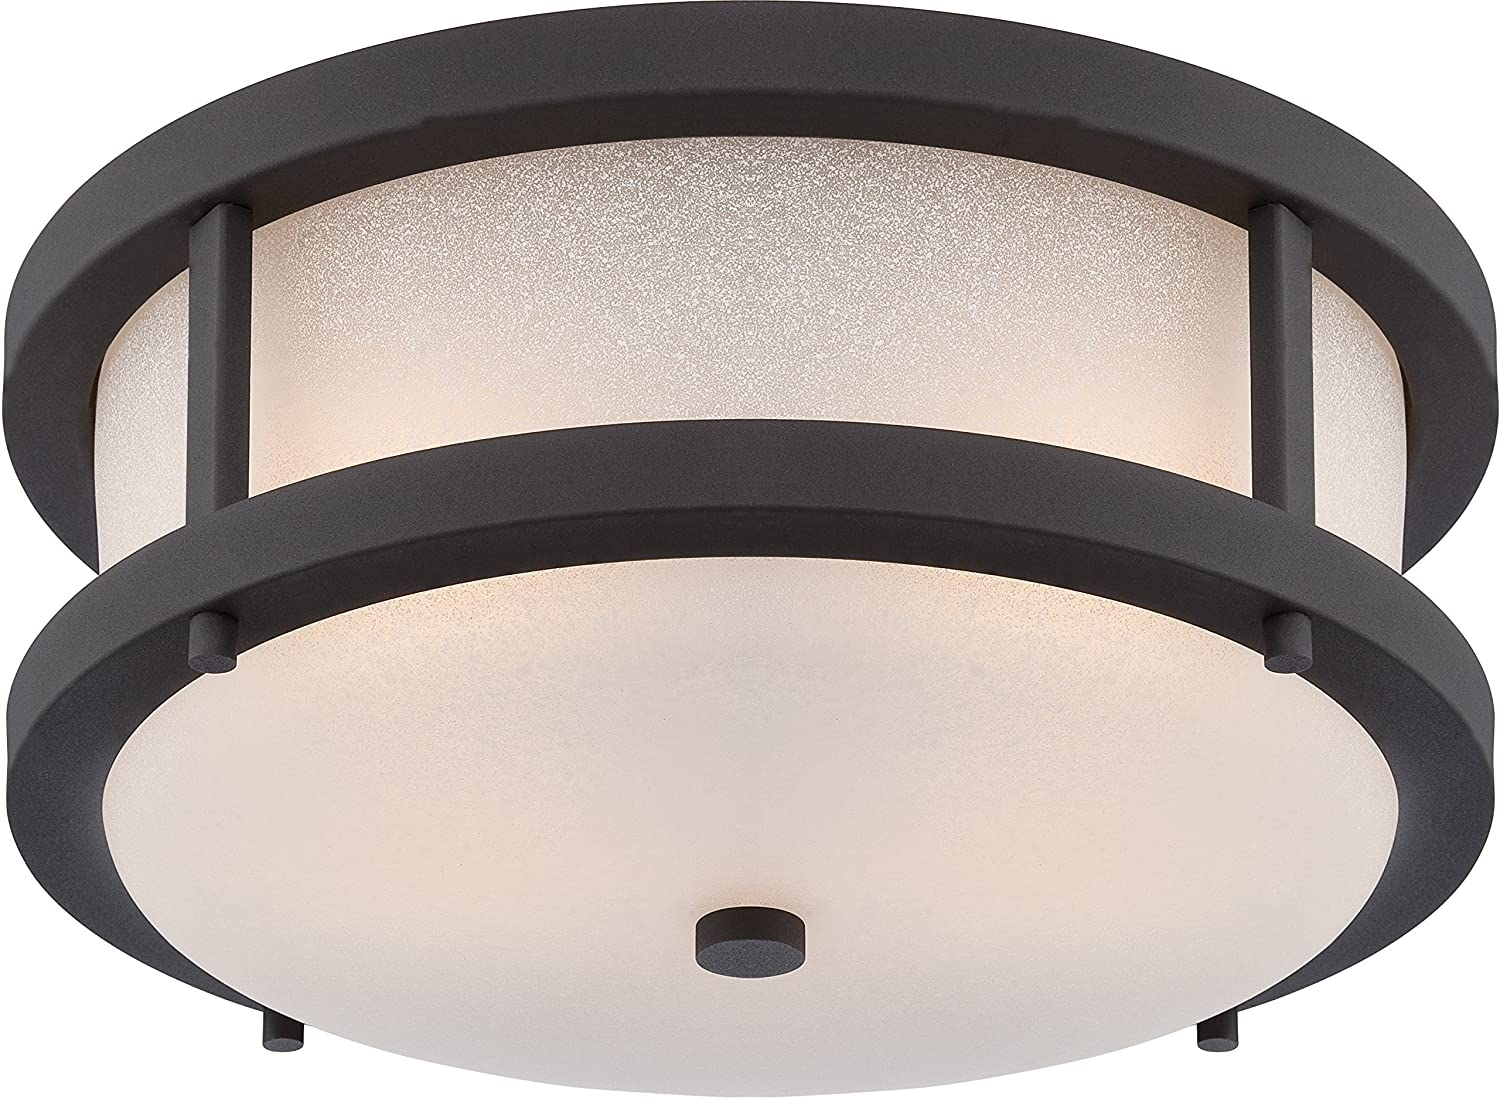 Nuvo Lighting 62/653 Willis LED Outdoor Flush Fixture with Antique White Glass by Nuvo Lighting  B0136PU6D6